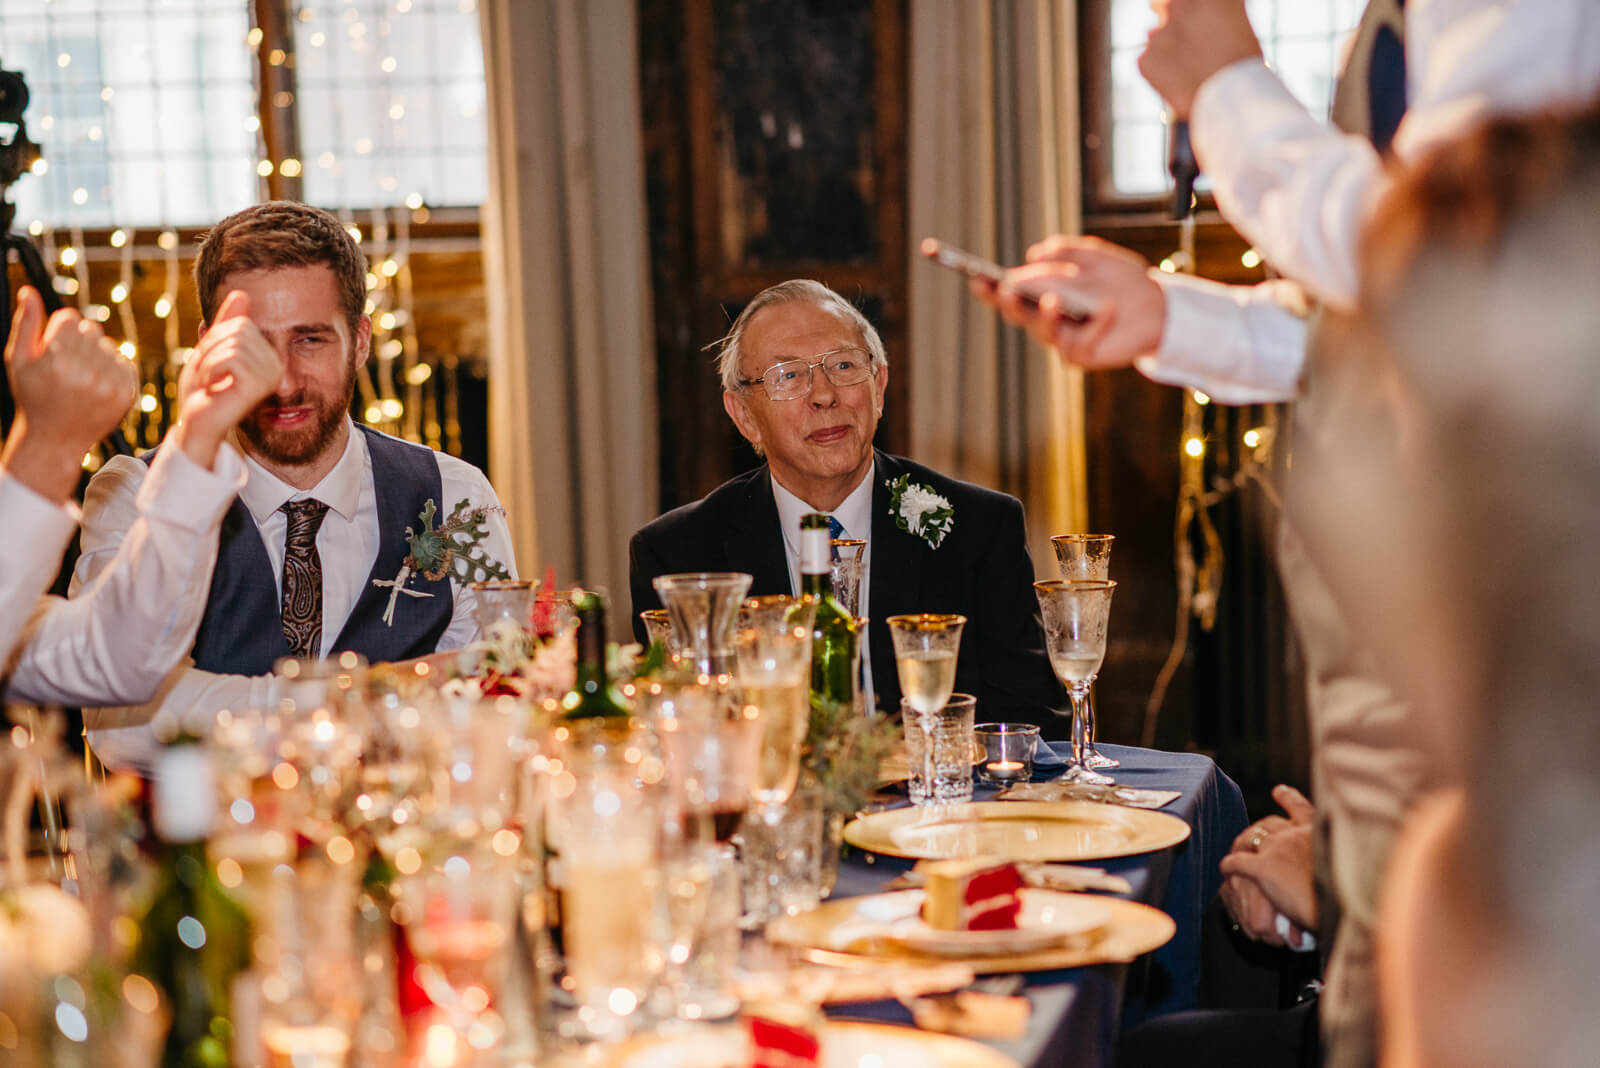 grandad looks on during speeches at London Wedding in Battersea Arts Centre